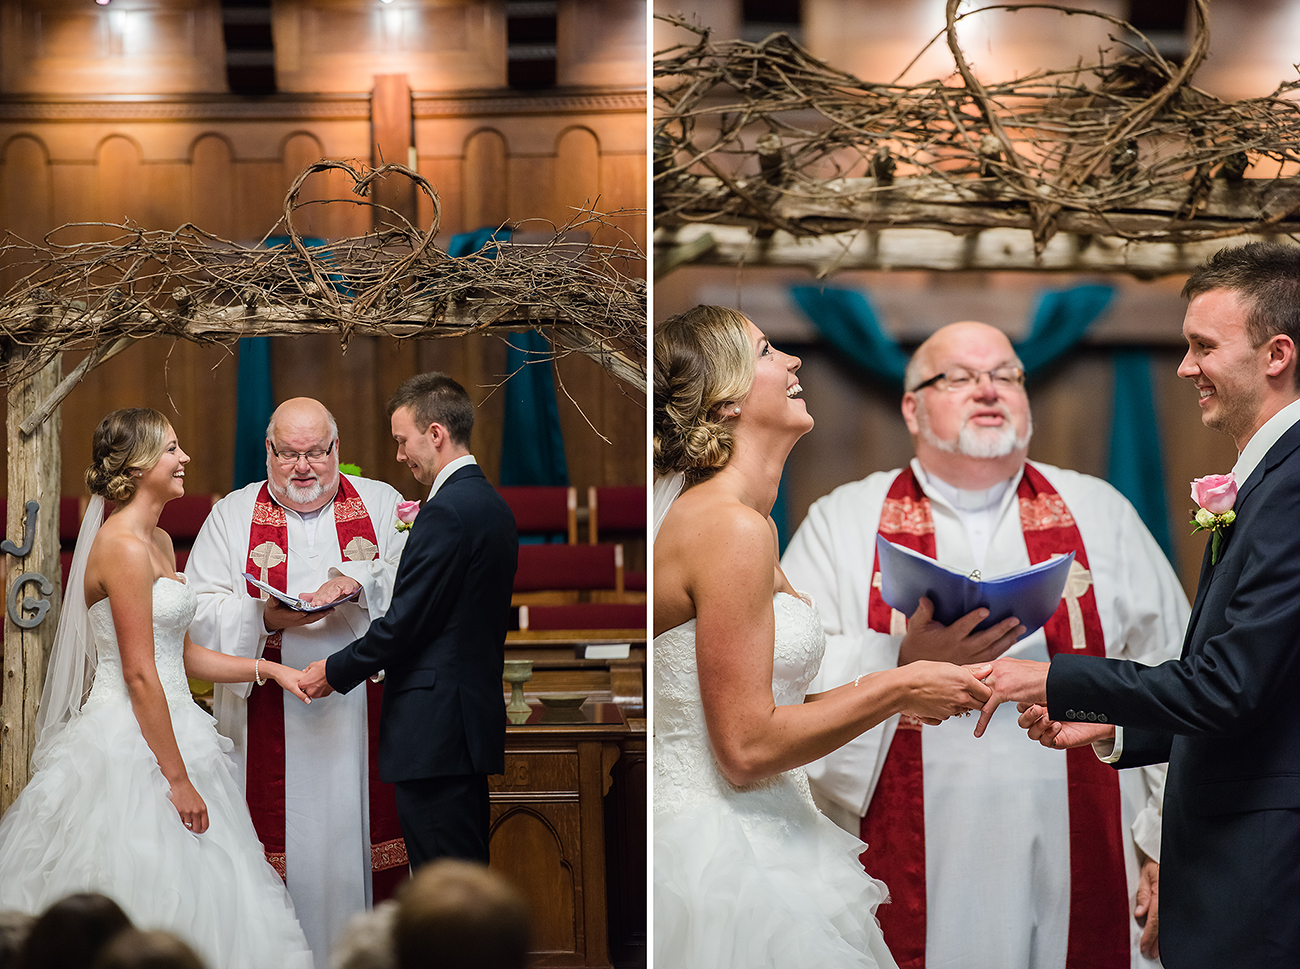 C-Jessica-&-Graham-Wedding-159-1300